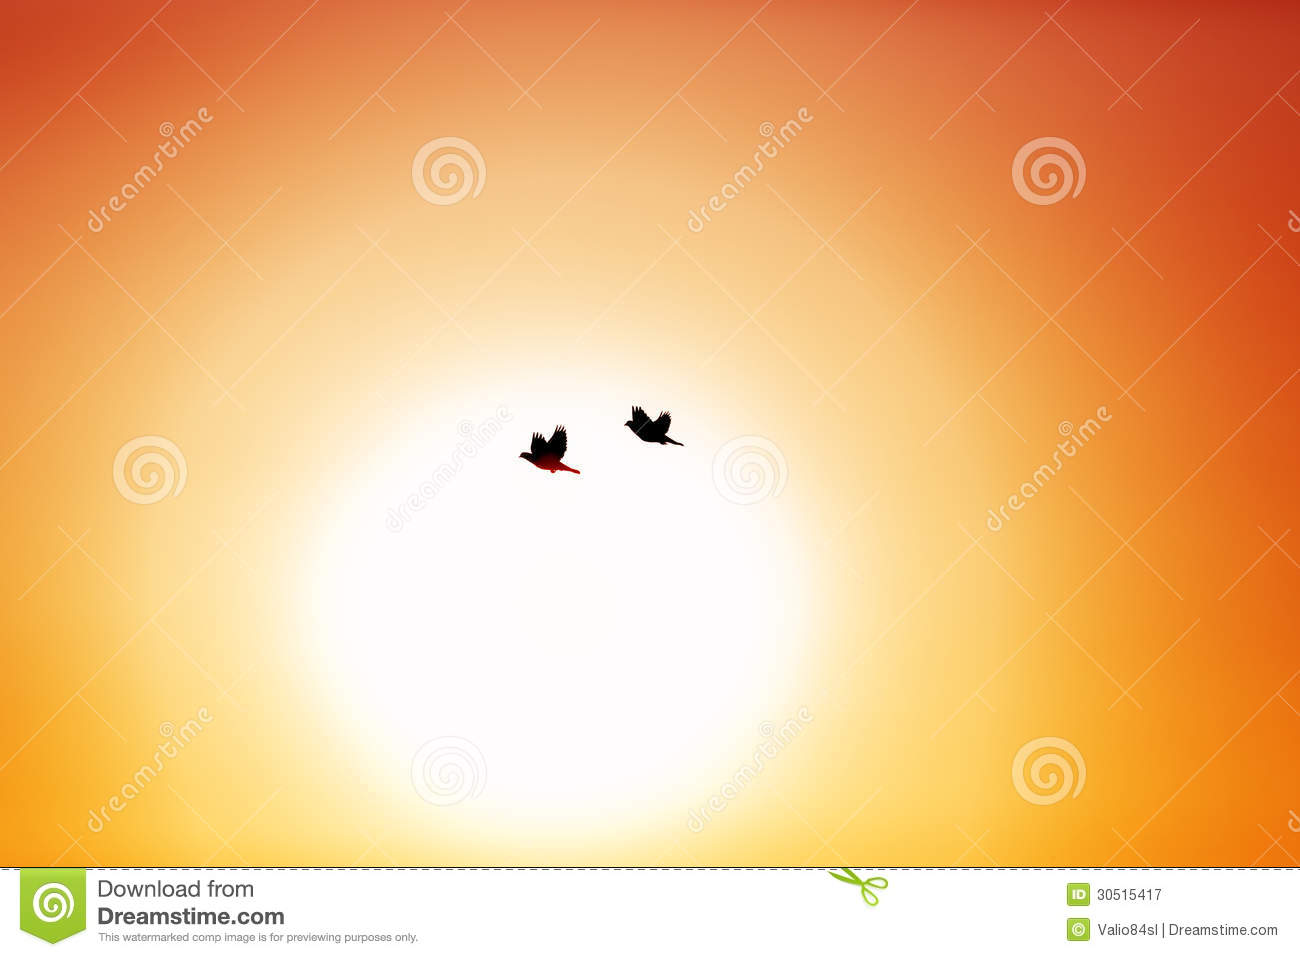 Royalty Free Stock Photography Flying Birds Sky Doves Silhouette Image...